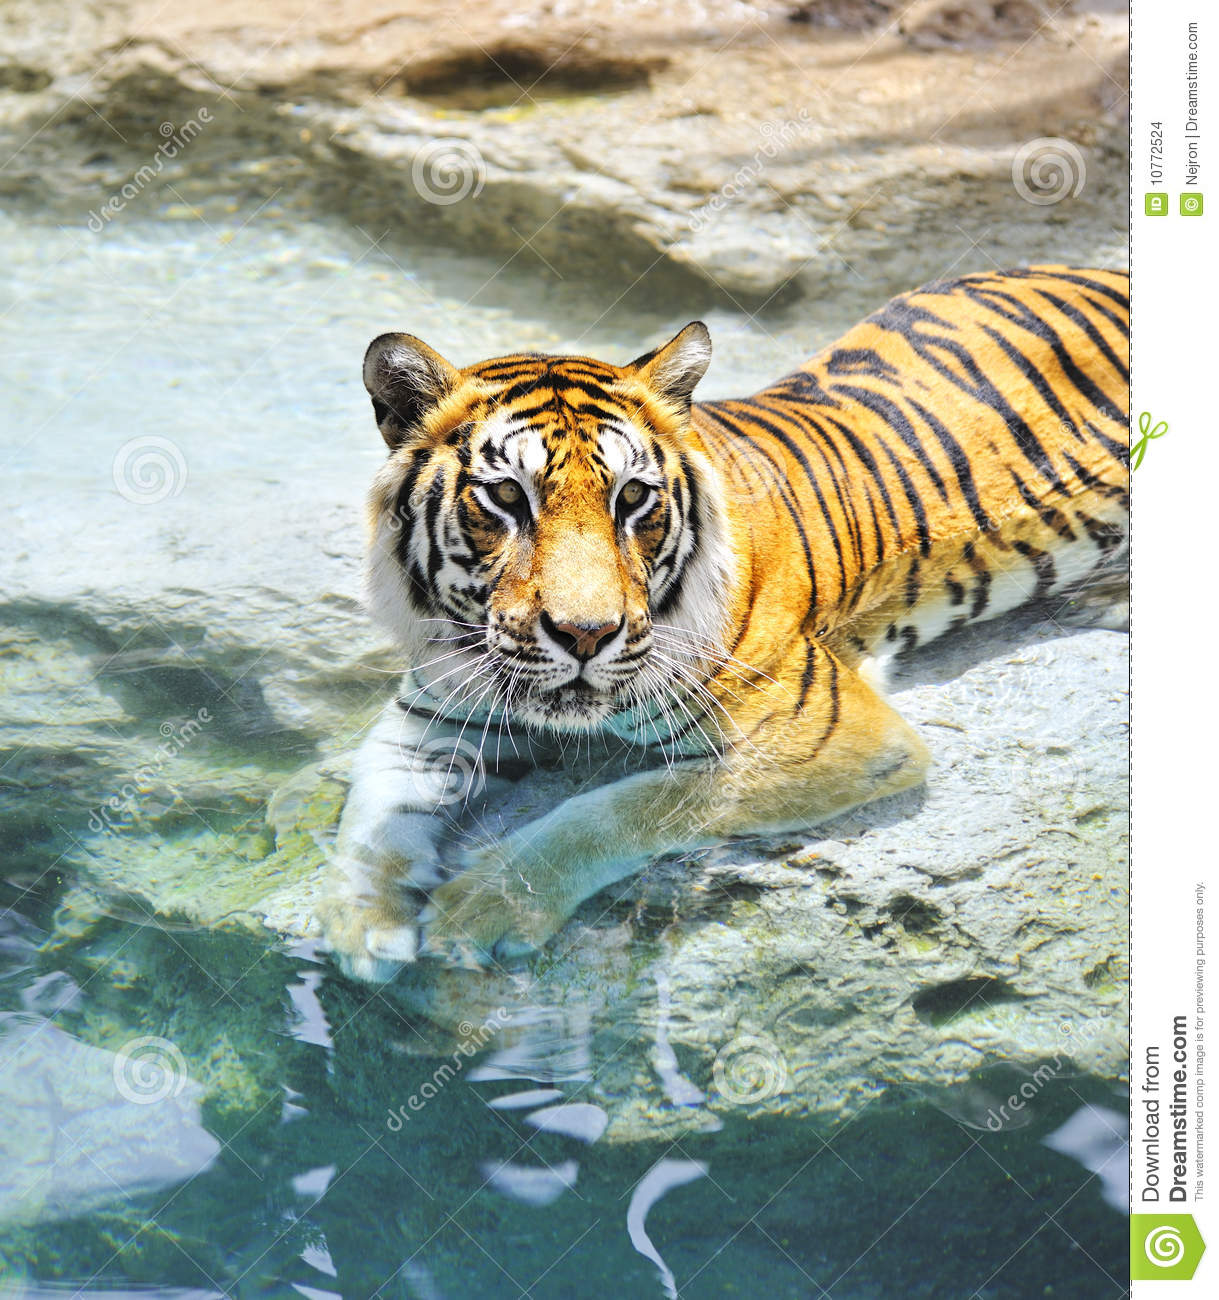 Tiger tired stock image. Image of aggression, free ... |Bengal Tiger Tired